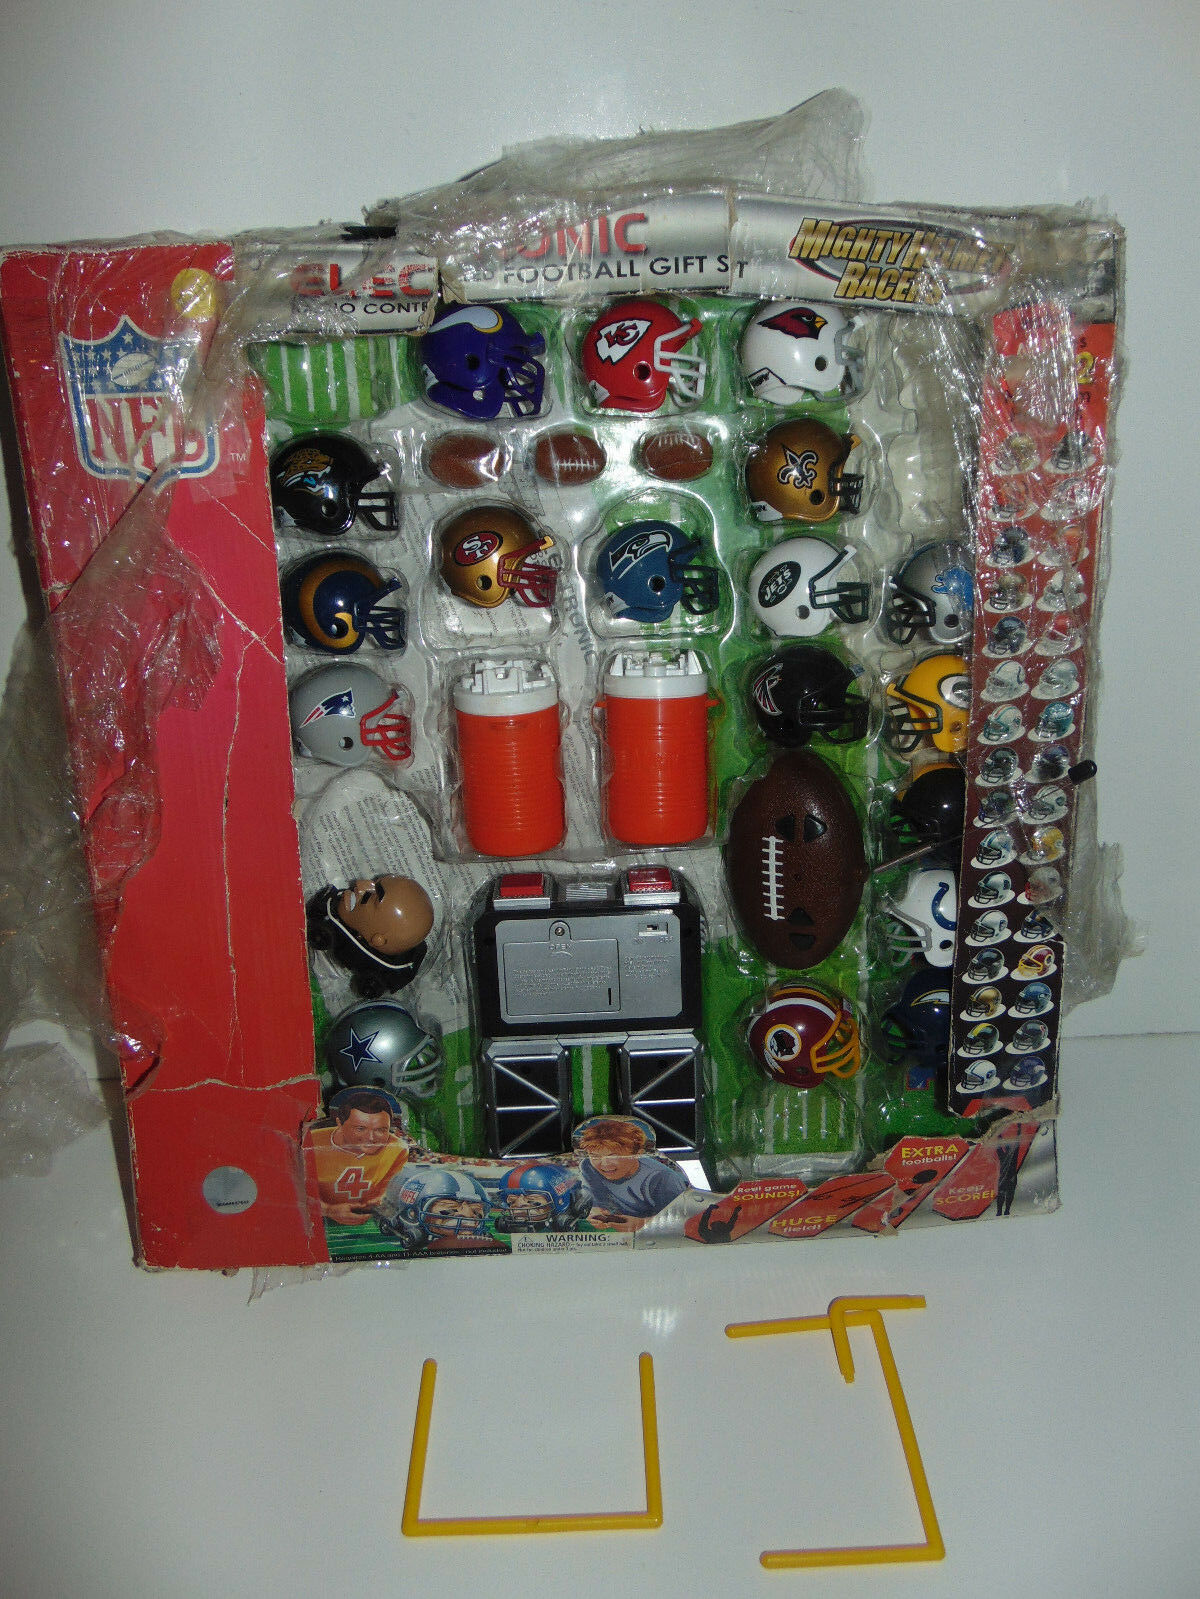 Mighty Helmet Racers NFL Teams Electronic Radio Controlled Football Gift Set